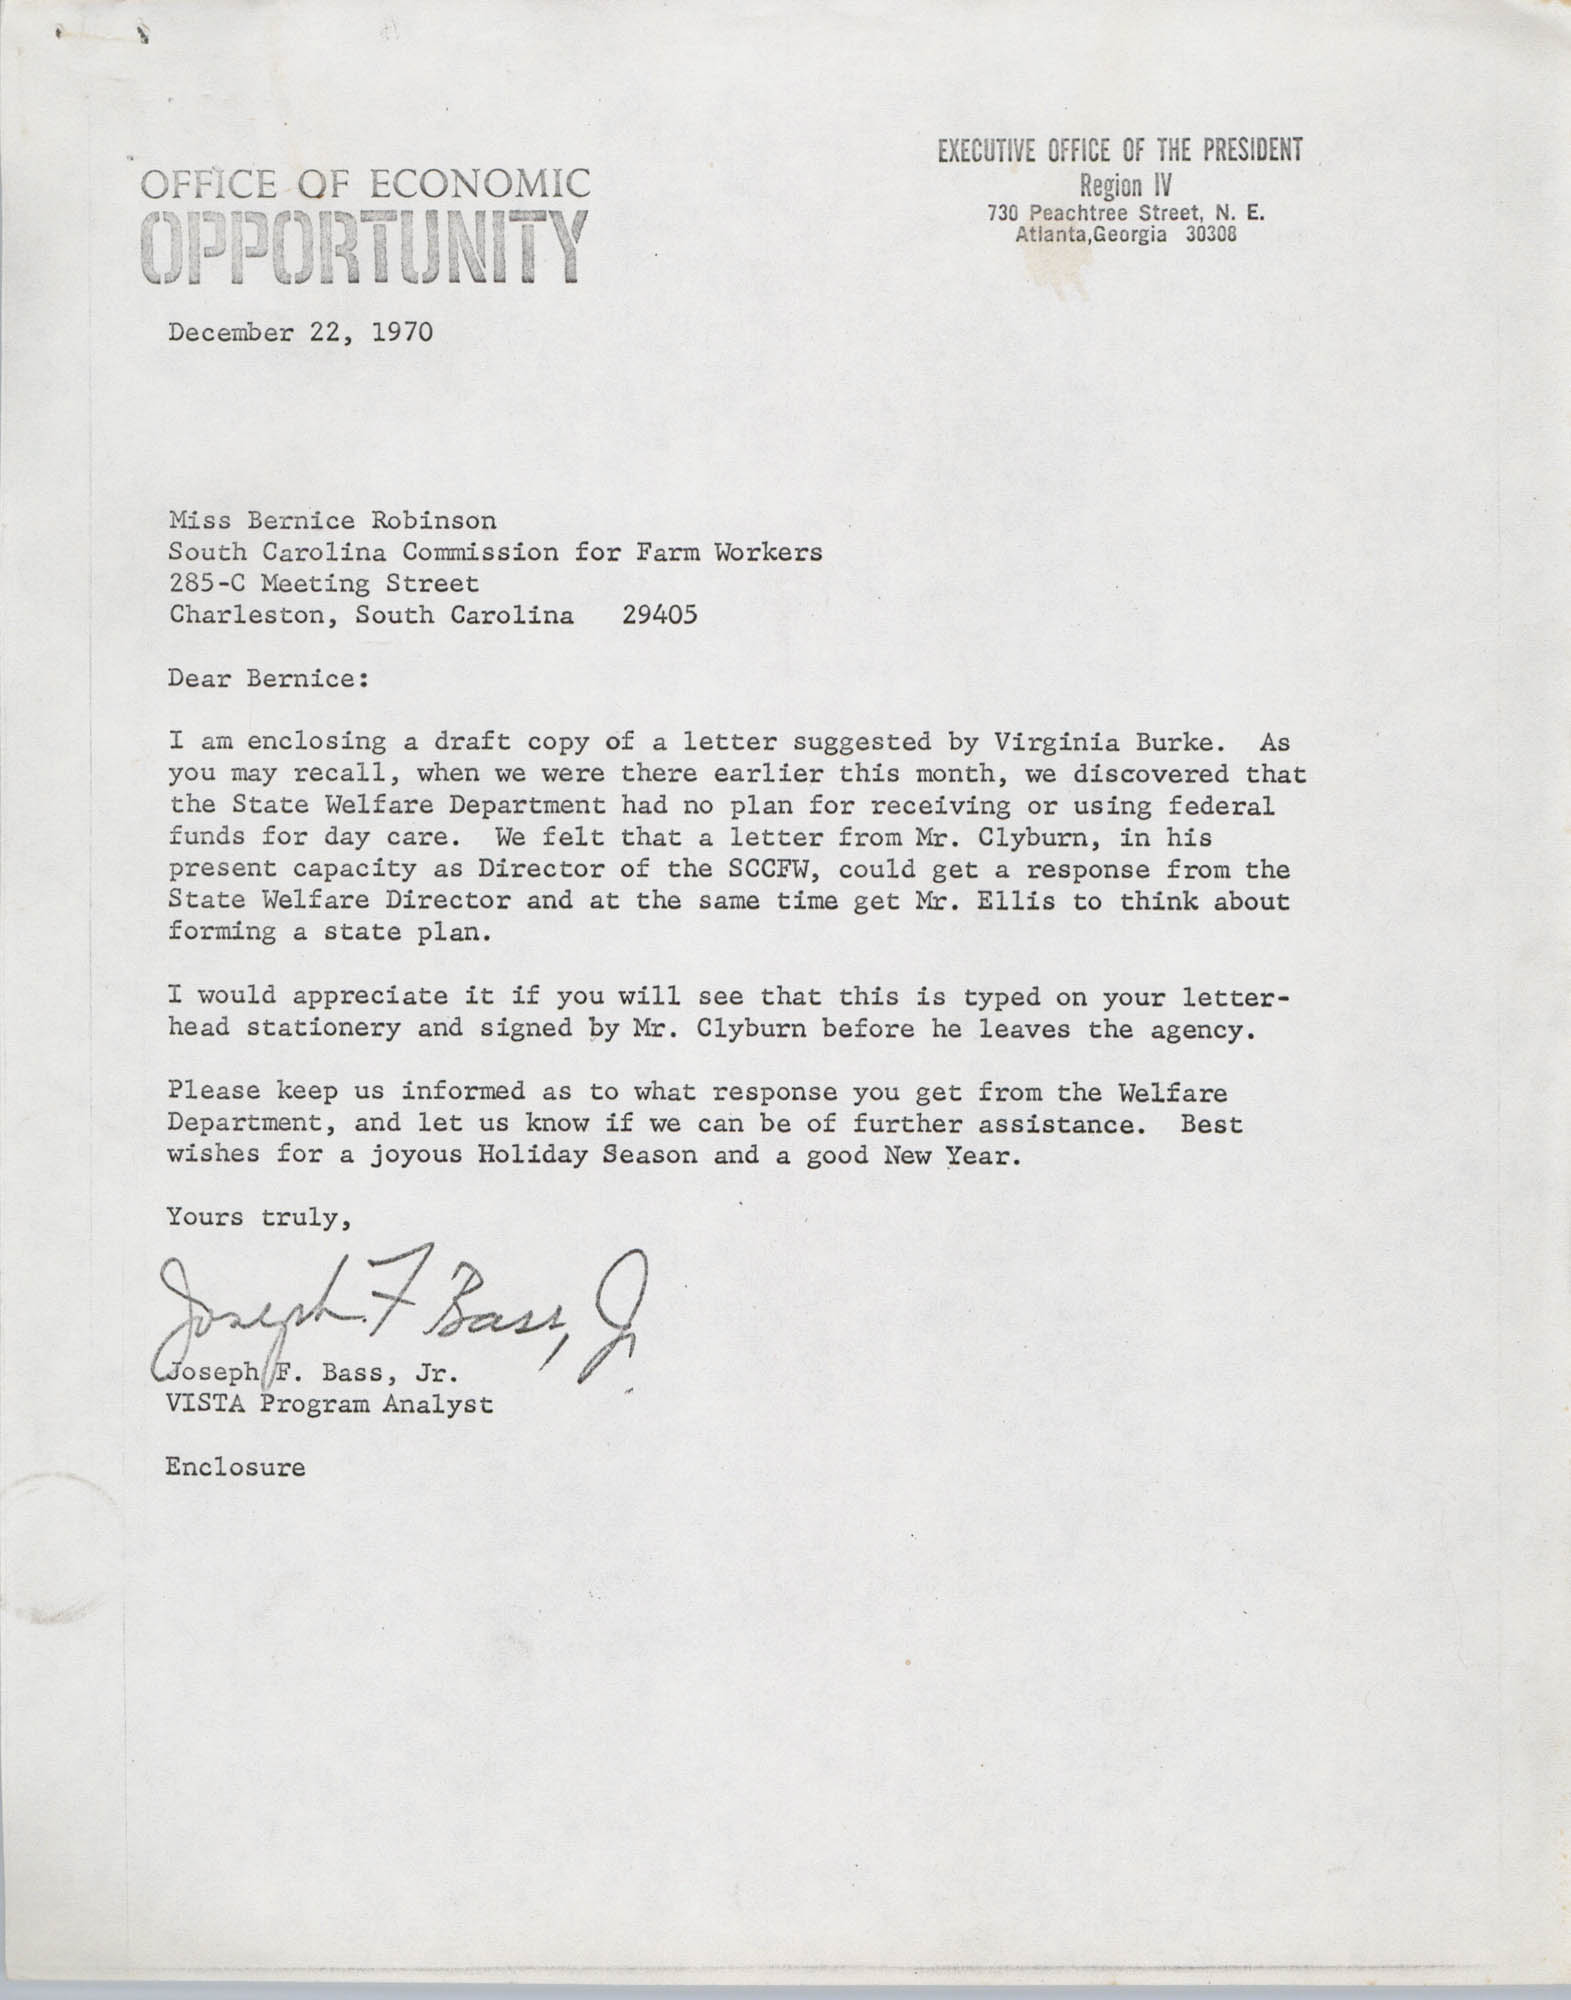 Letter from Joseph F. Bass, Jr. to Bernice Robinson, December 22, 1970